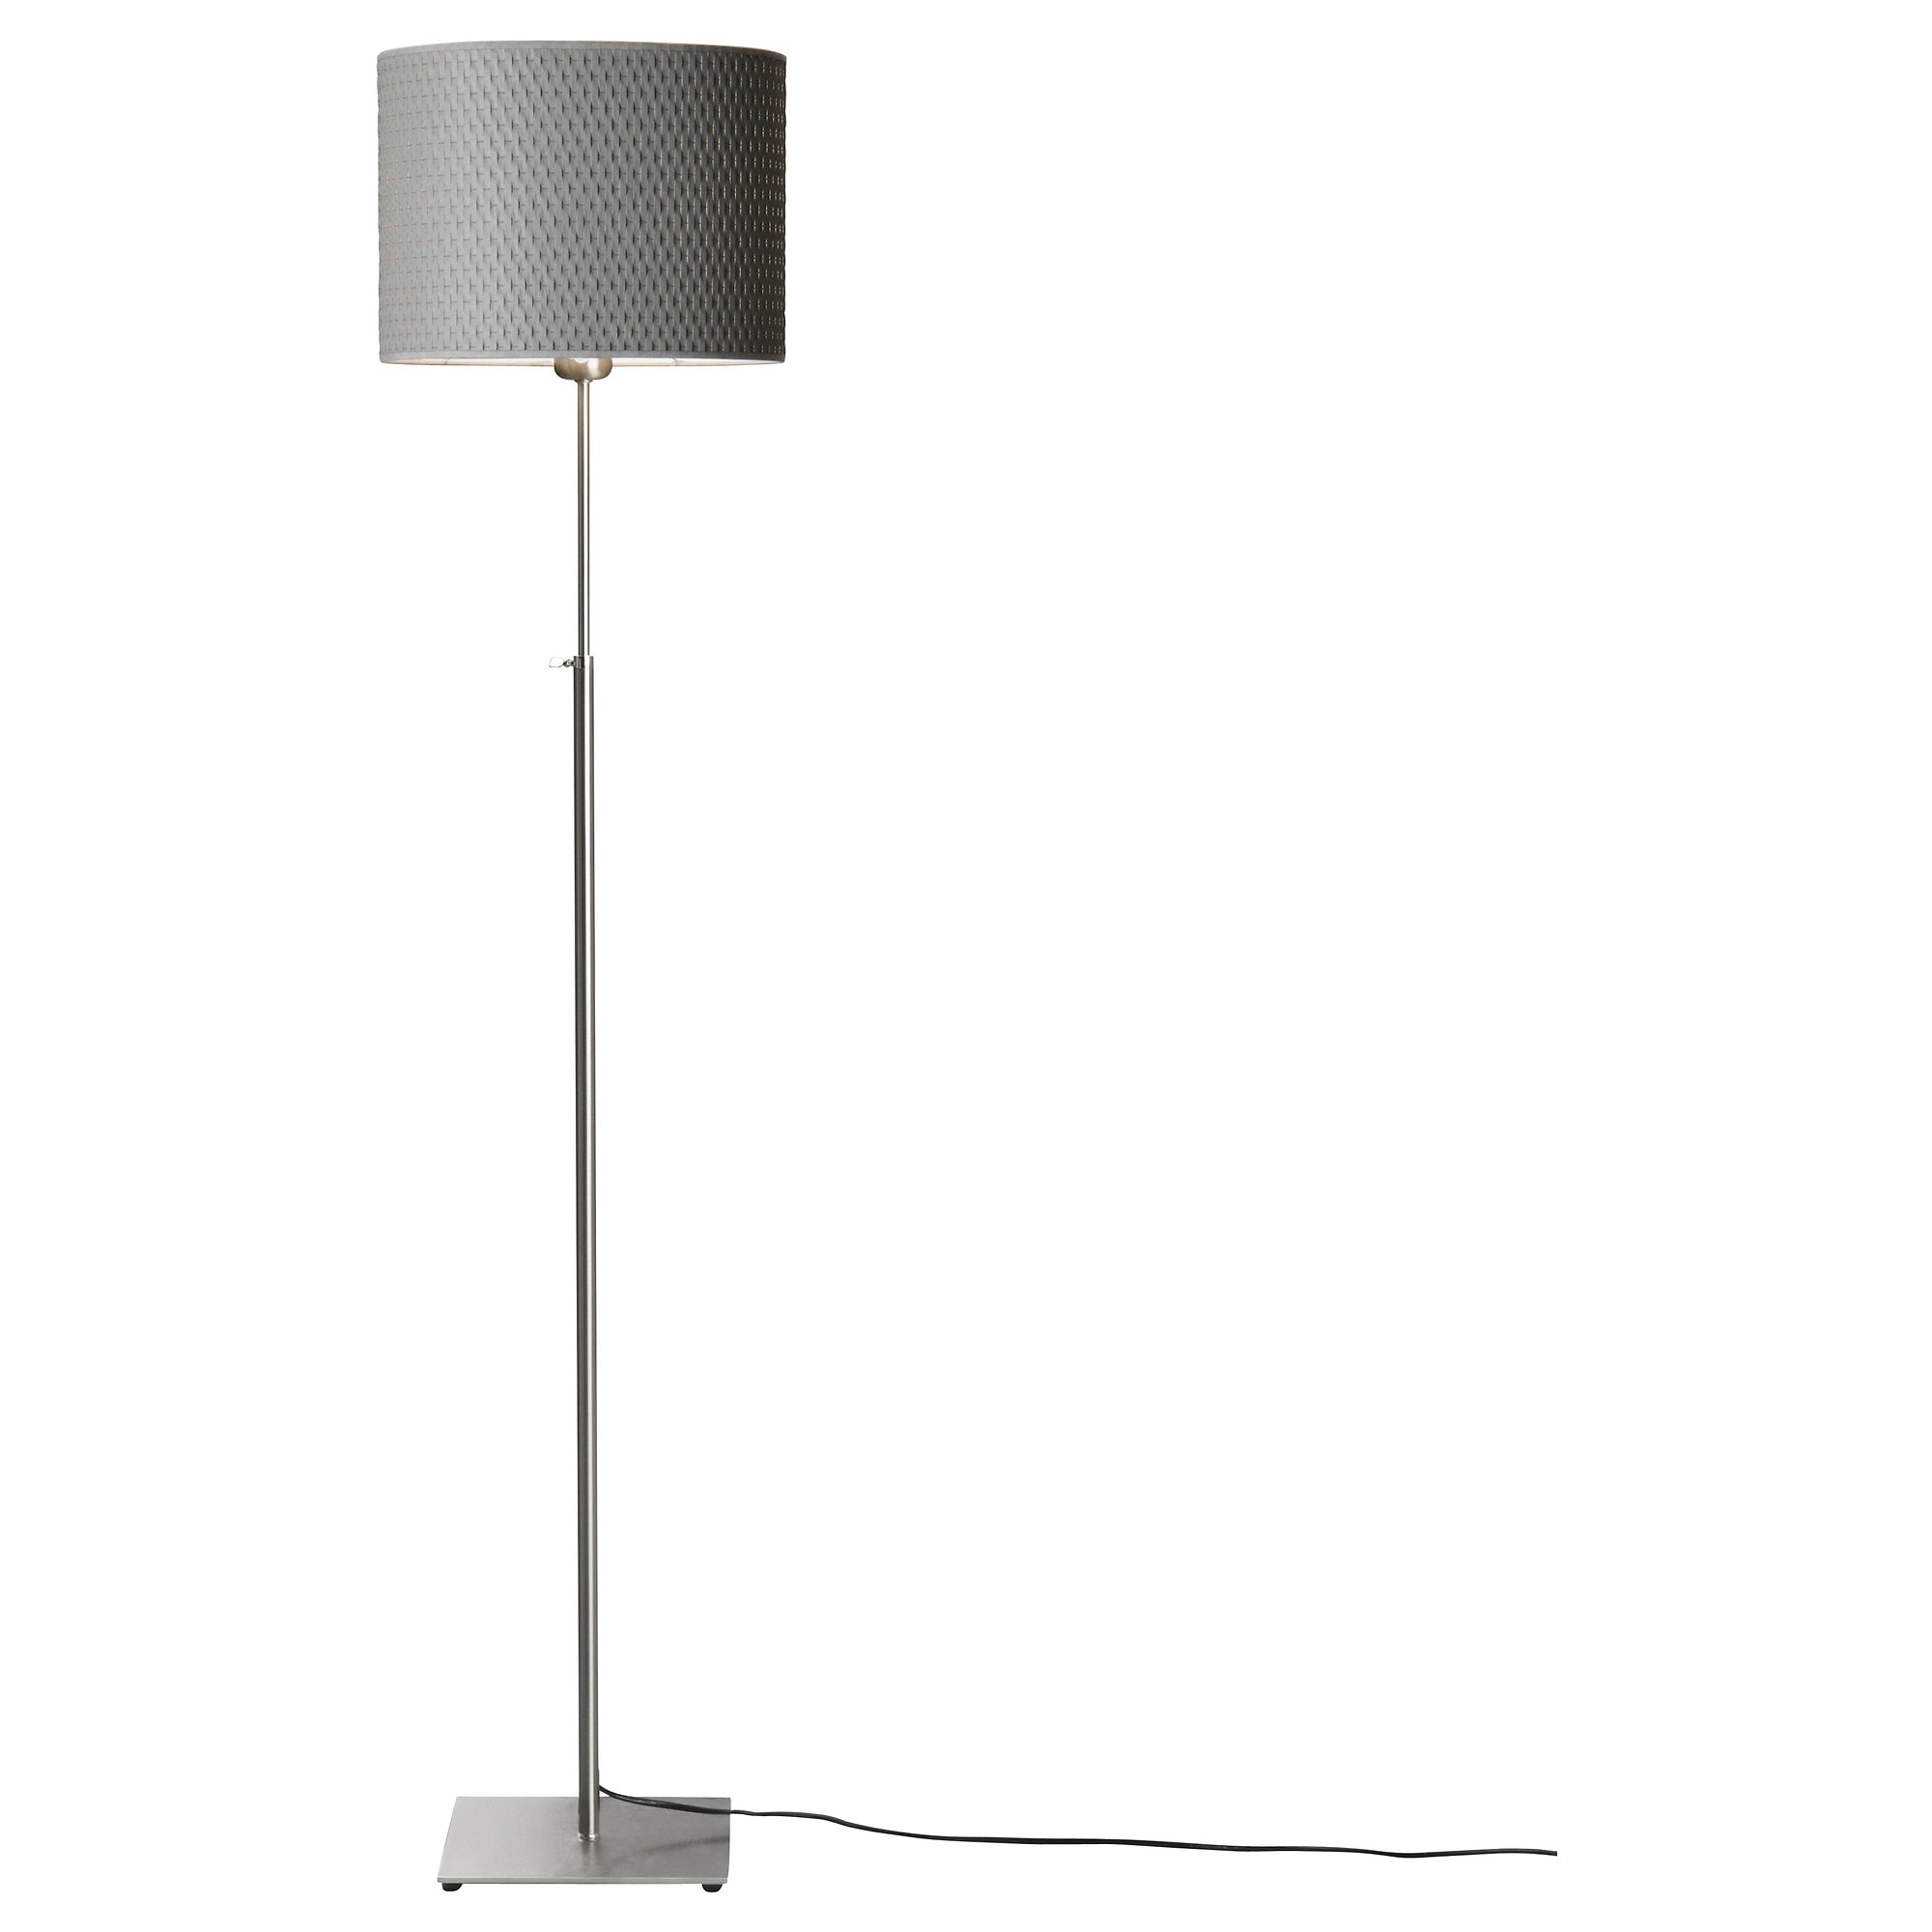 tall lamps floor lamps modern  contemporary floor lamps ikea  - floor lamps ikea